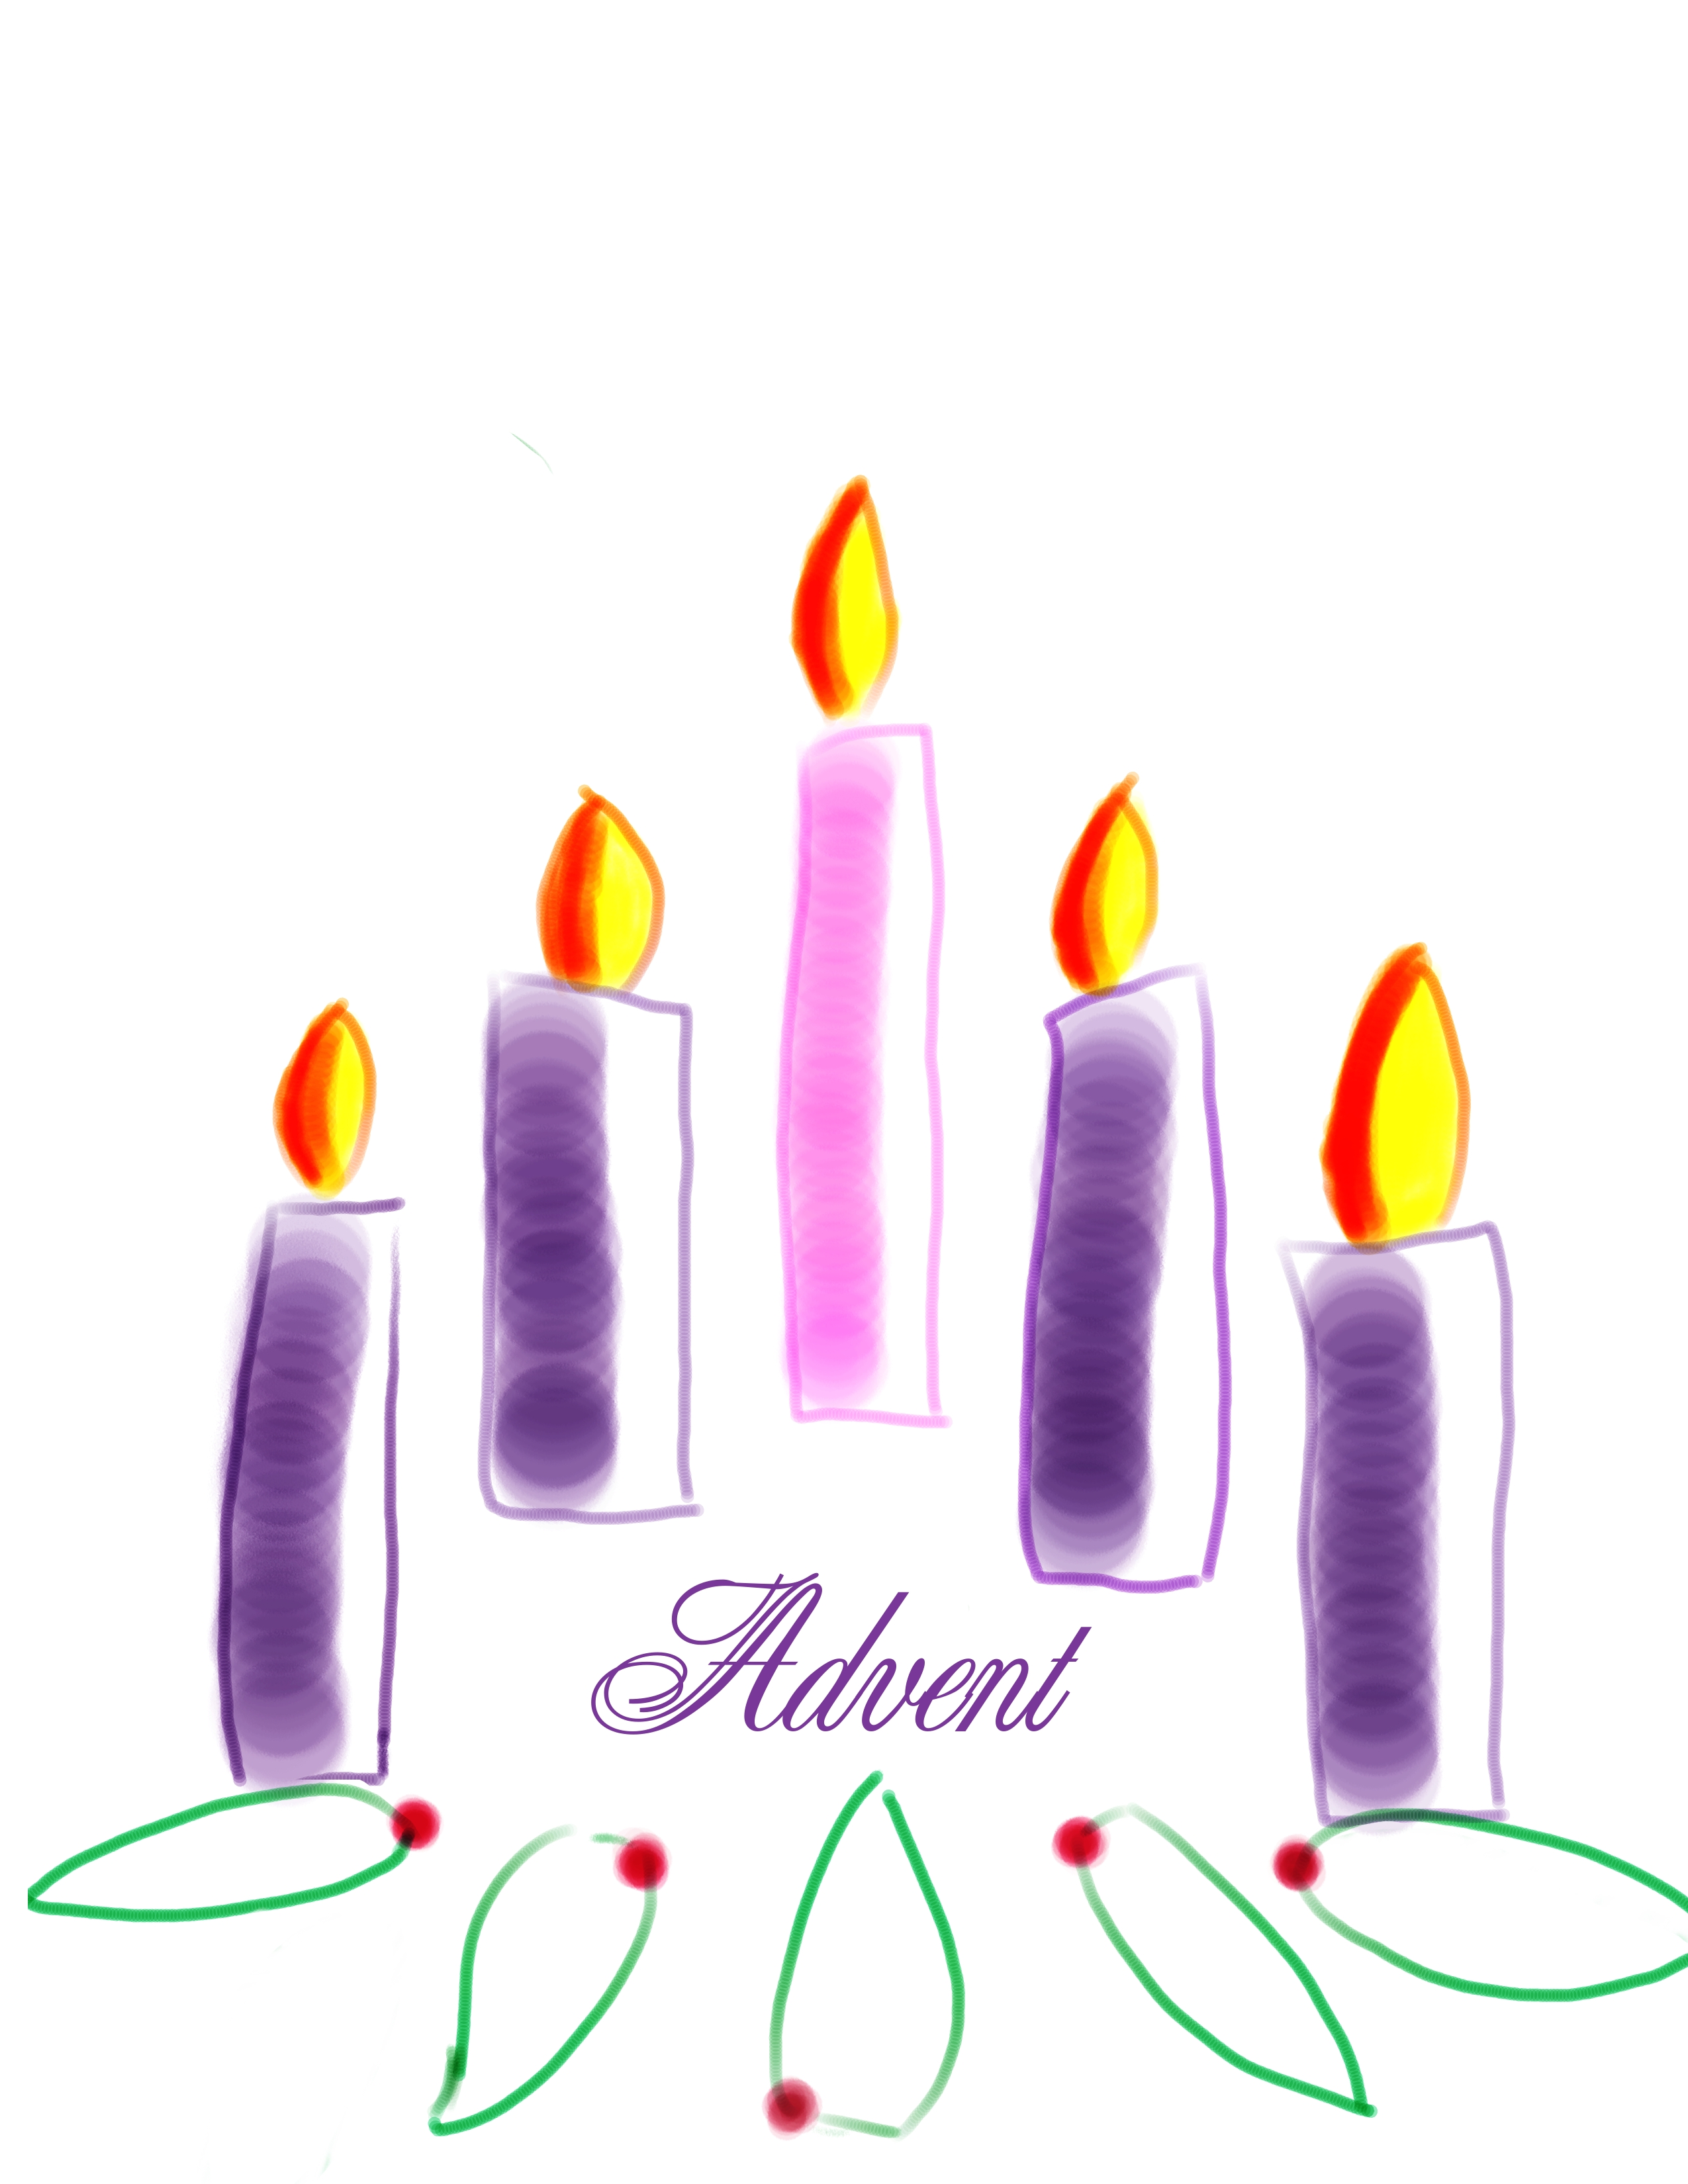 Last Candle Of Advent Clipart.